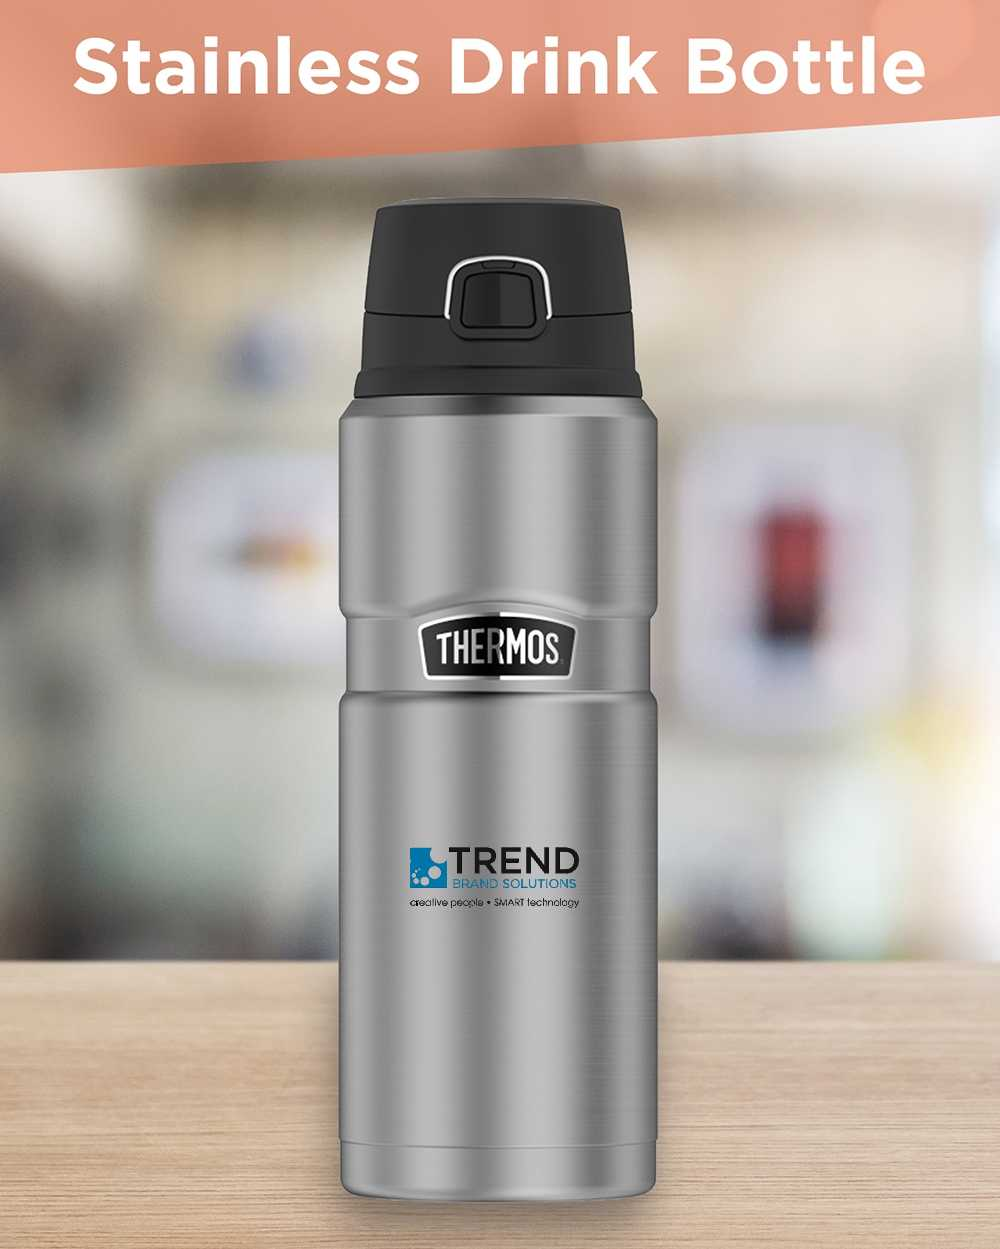 Stainless Drink Bottle AIM